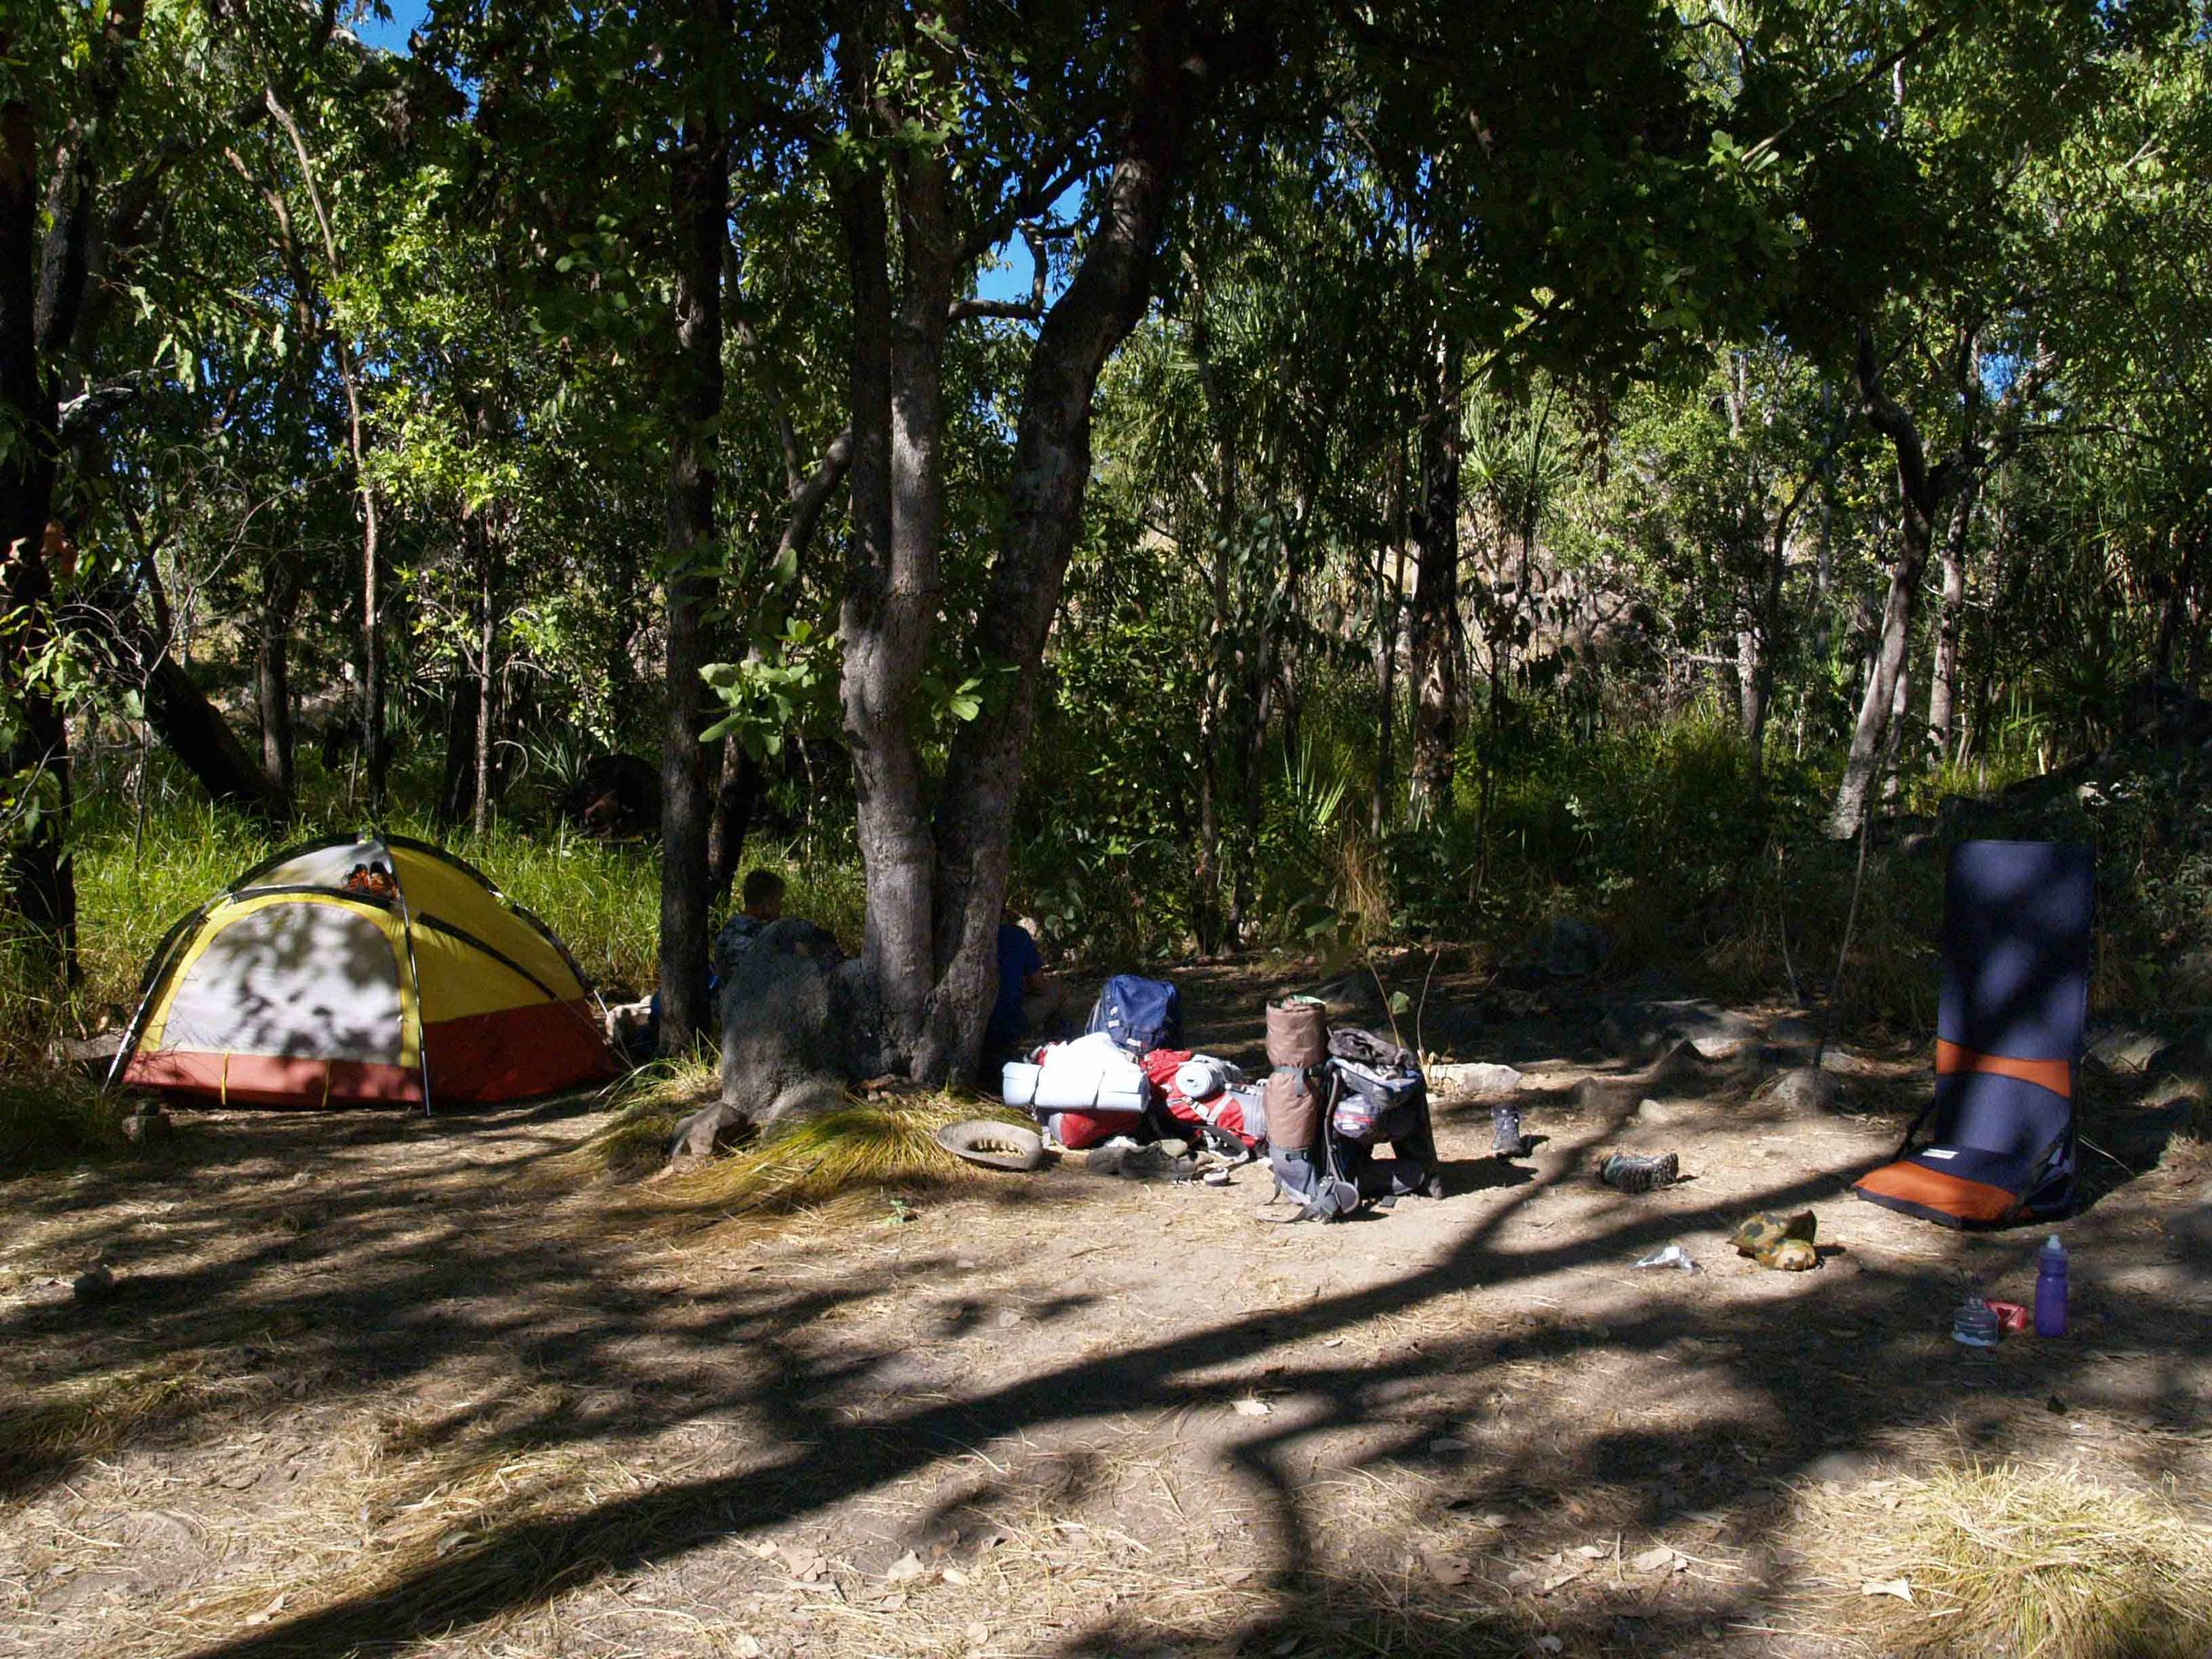 Crystal falls campsite is located next to the river under large shady trees